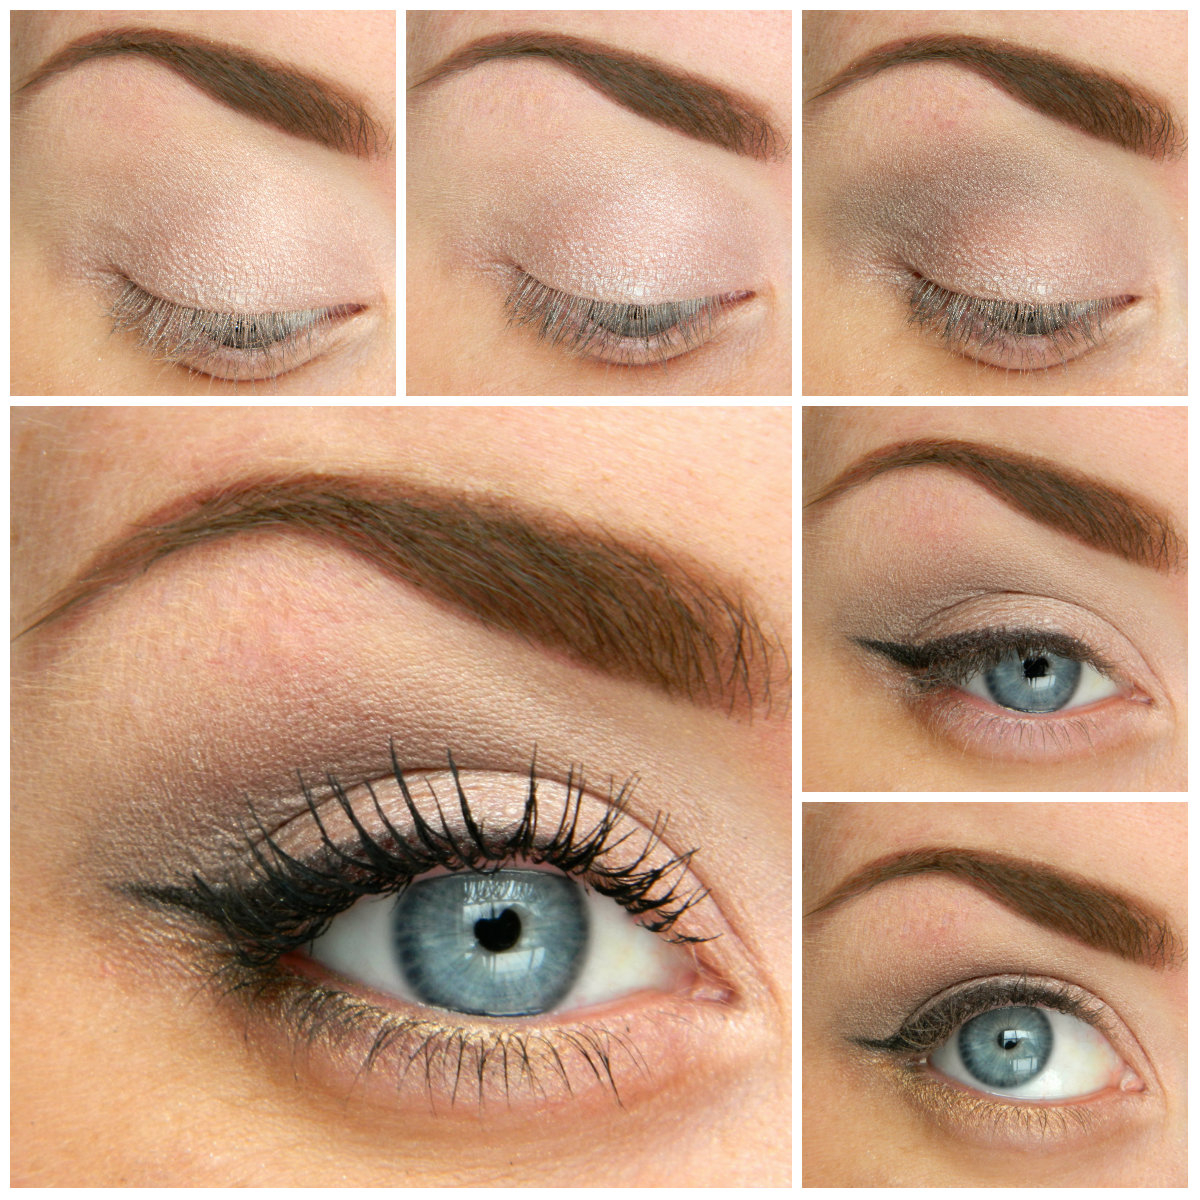 Best Way To Do Makeup For Blue Eyes 5 Ways To Make Blue Eyes Pop With Proper Eye Makeup Her Style Code